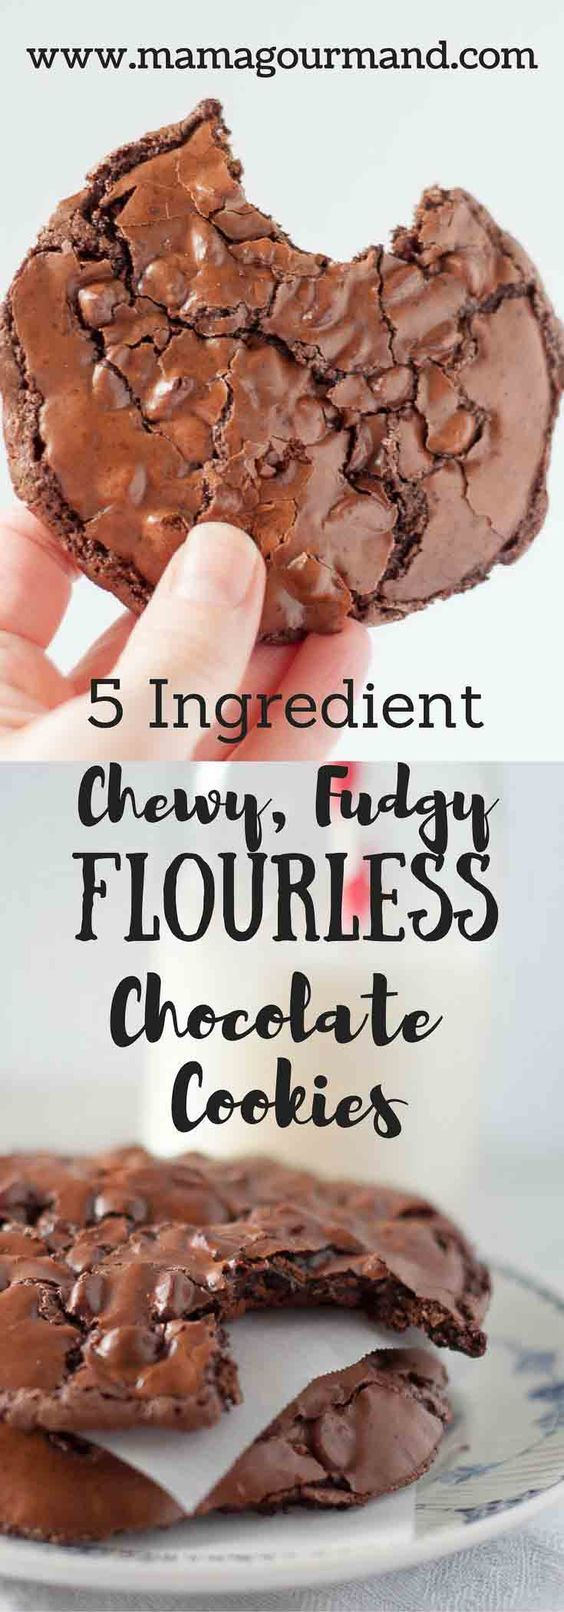 Chewy, Fudgy Flourless Chocolate Cookies are a naturally gluten free chocolate cookie with only 5 ingredients. http://www.mamagourmand.com via @mamagourmand